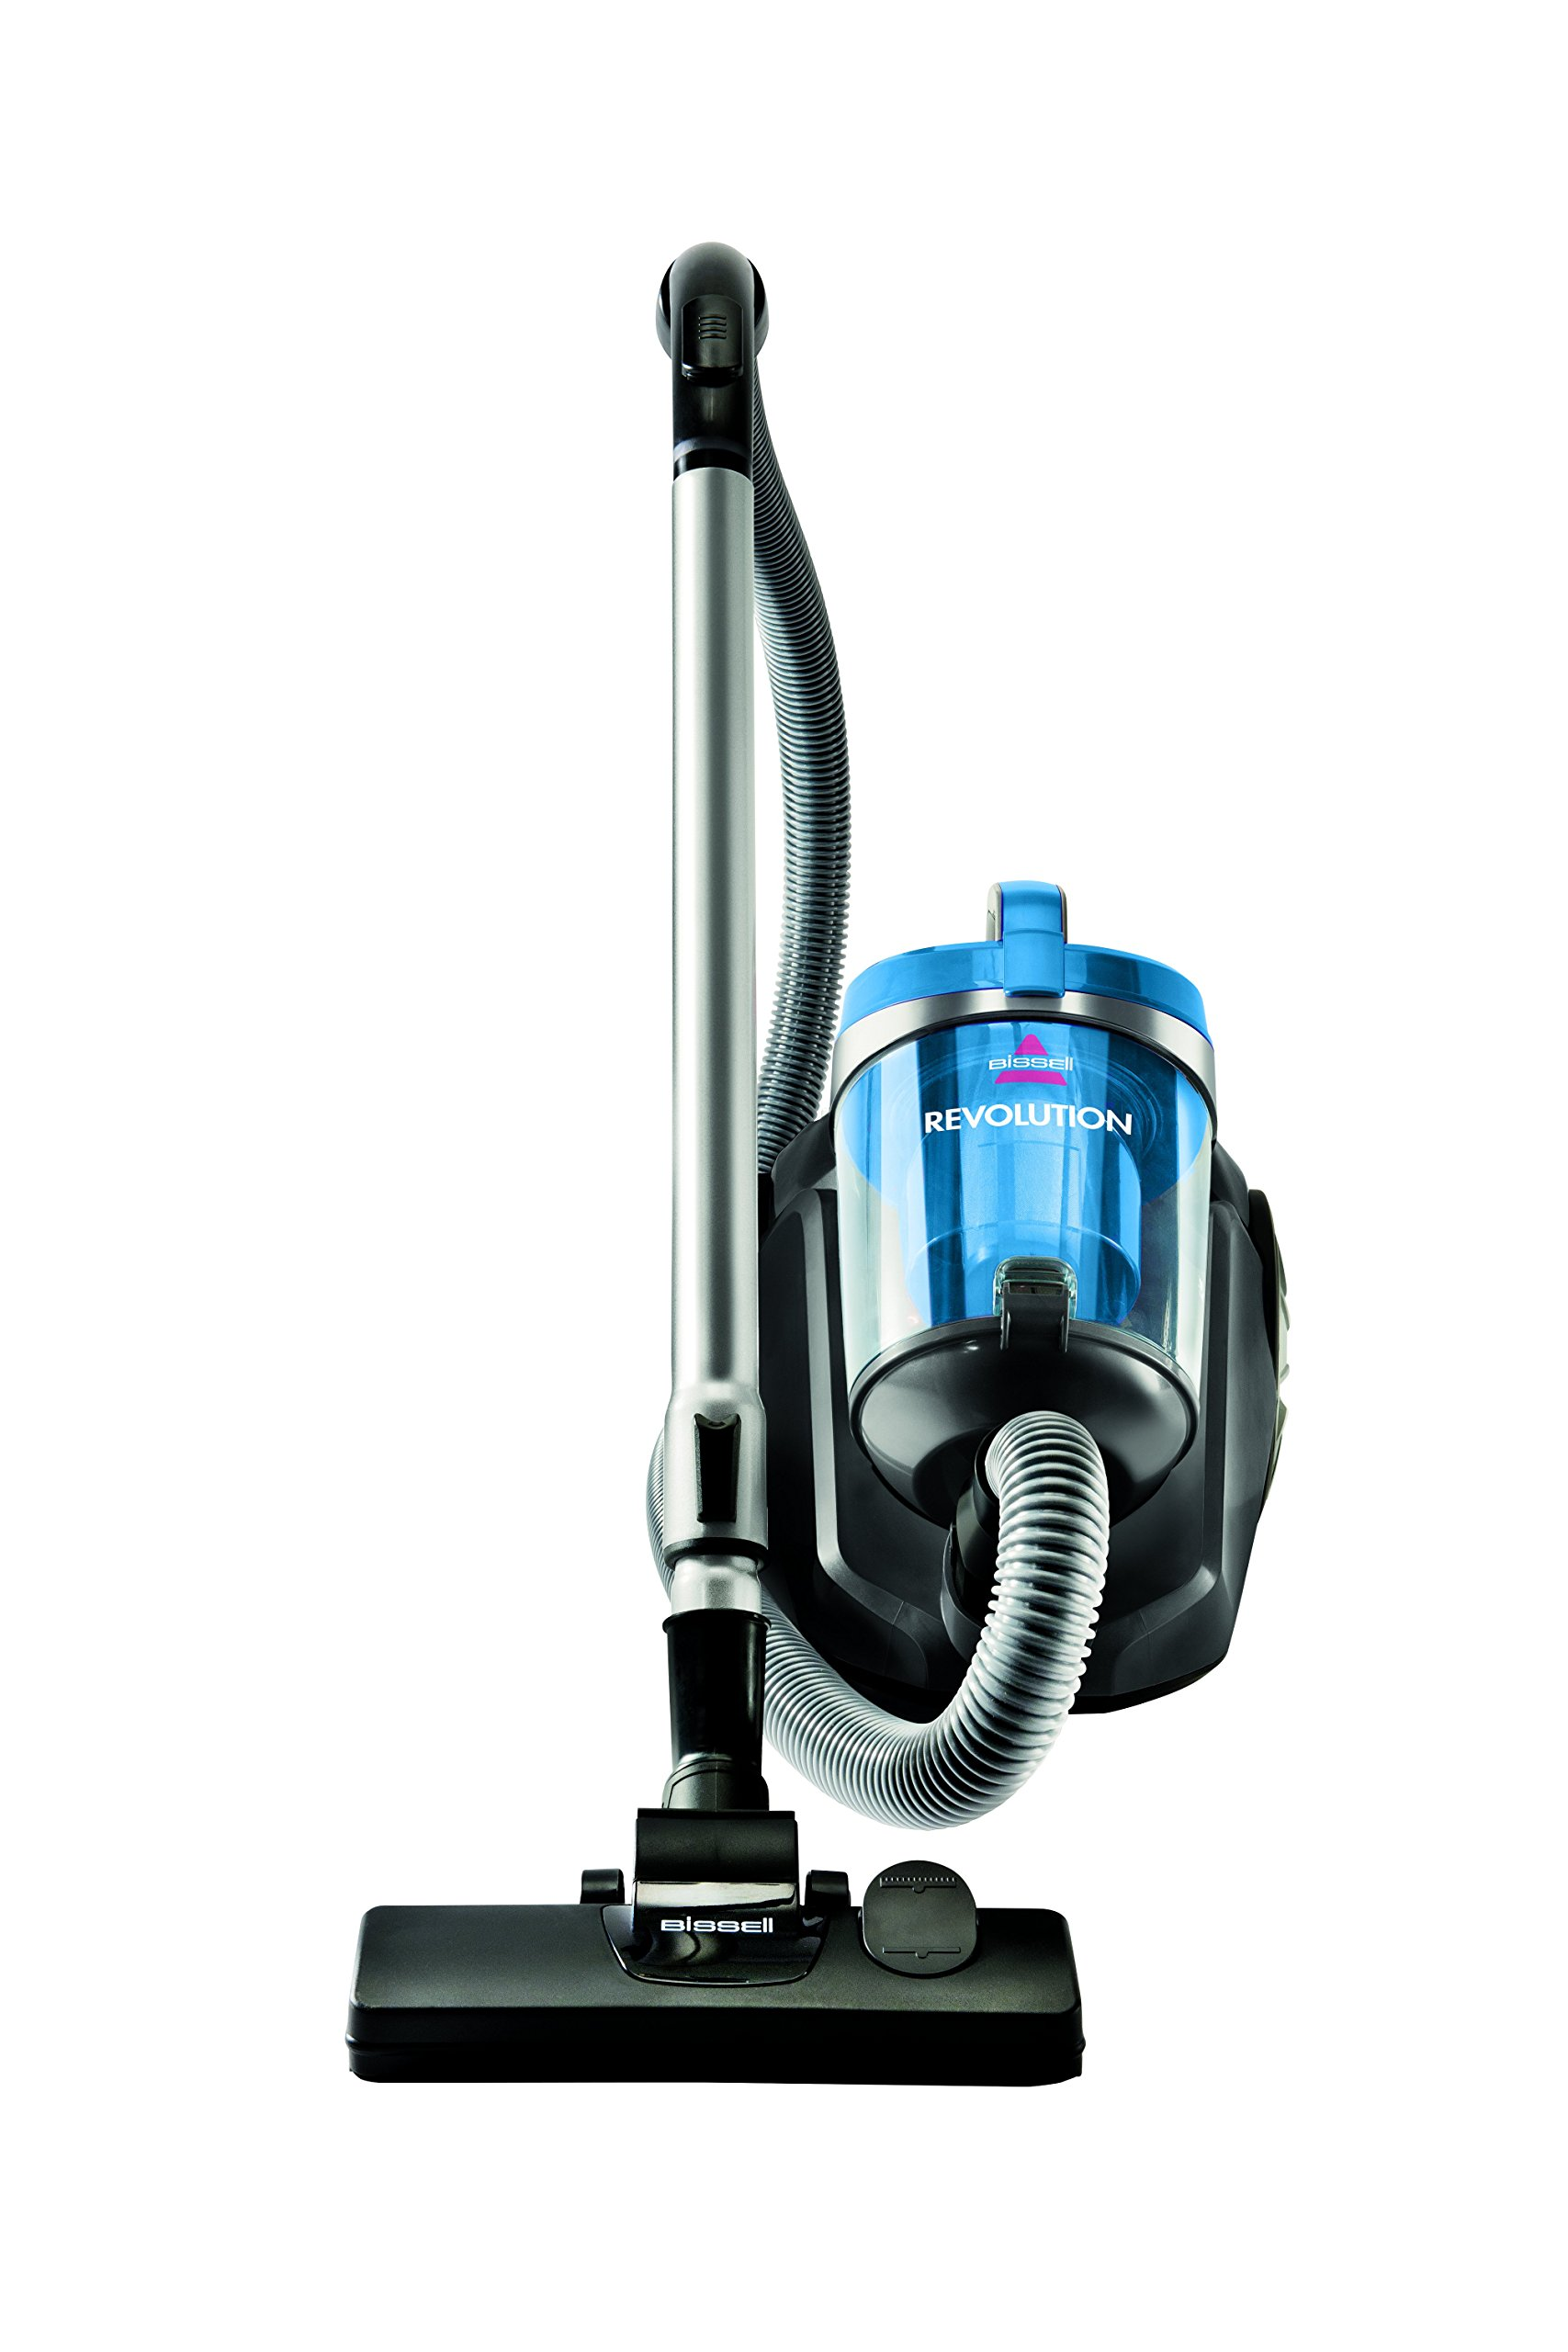 Bissell 12901 Revolution Bagless Canister Vacuum - Corded by Bissell